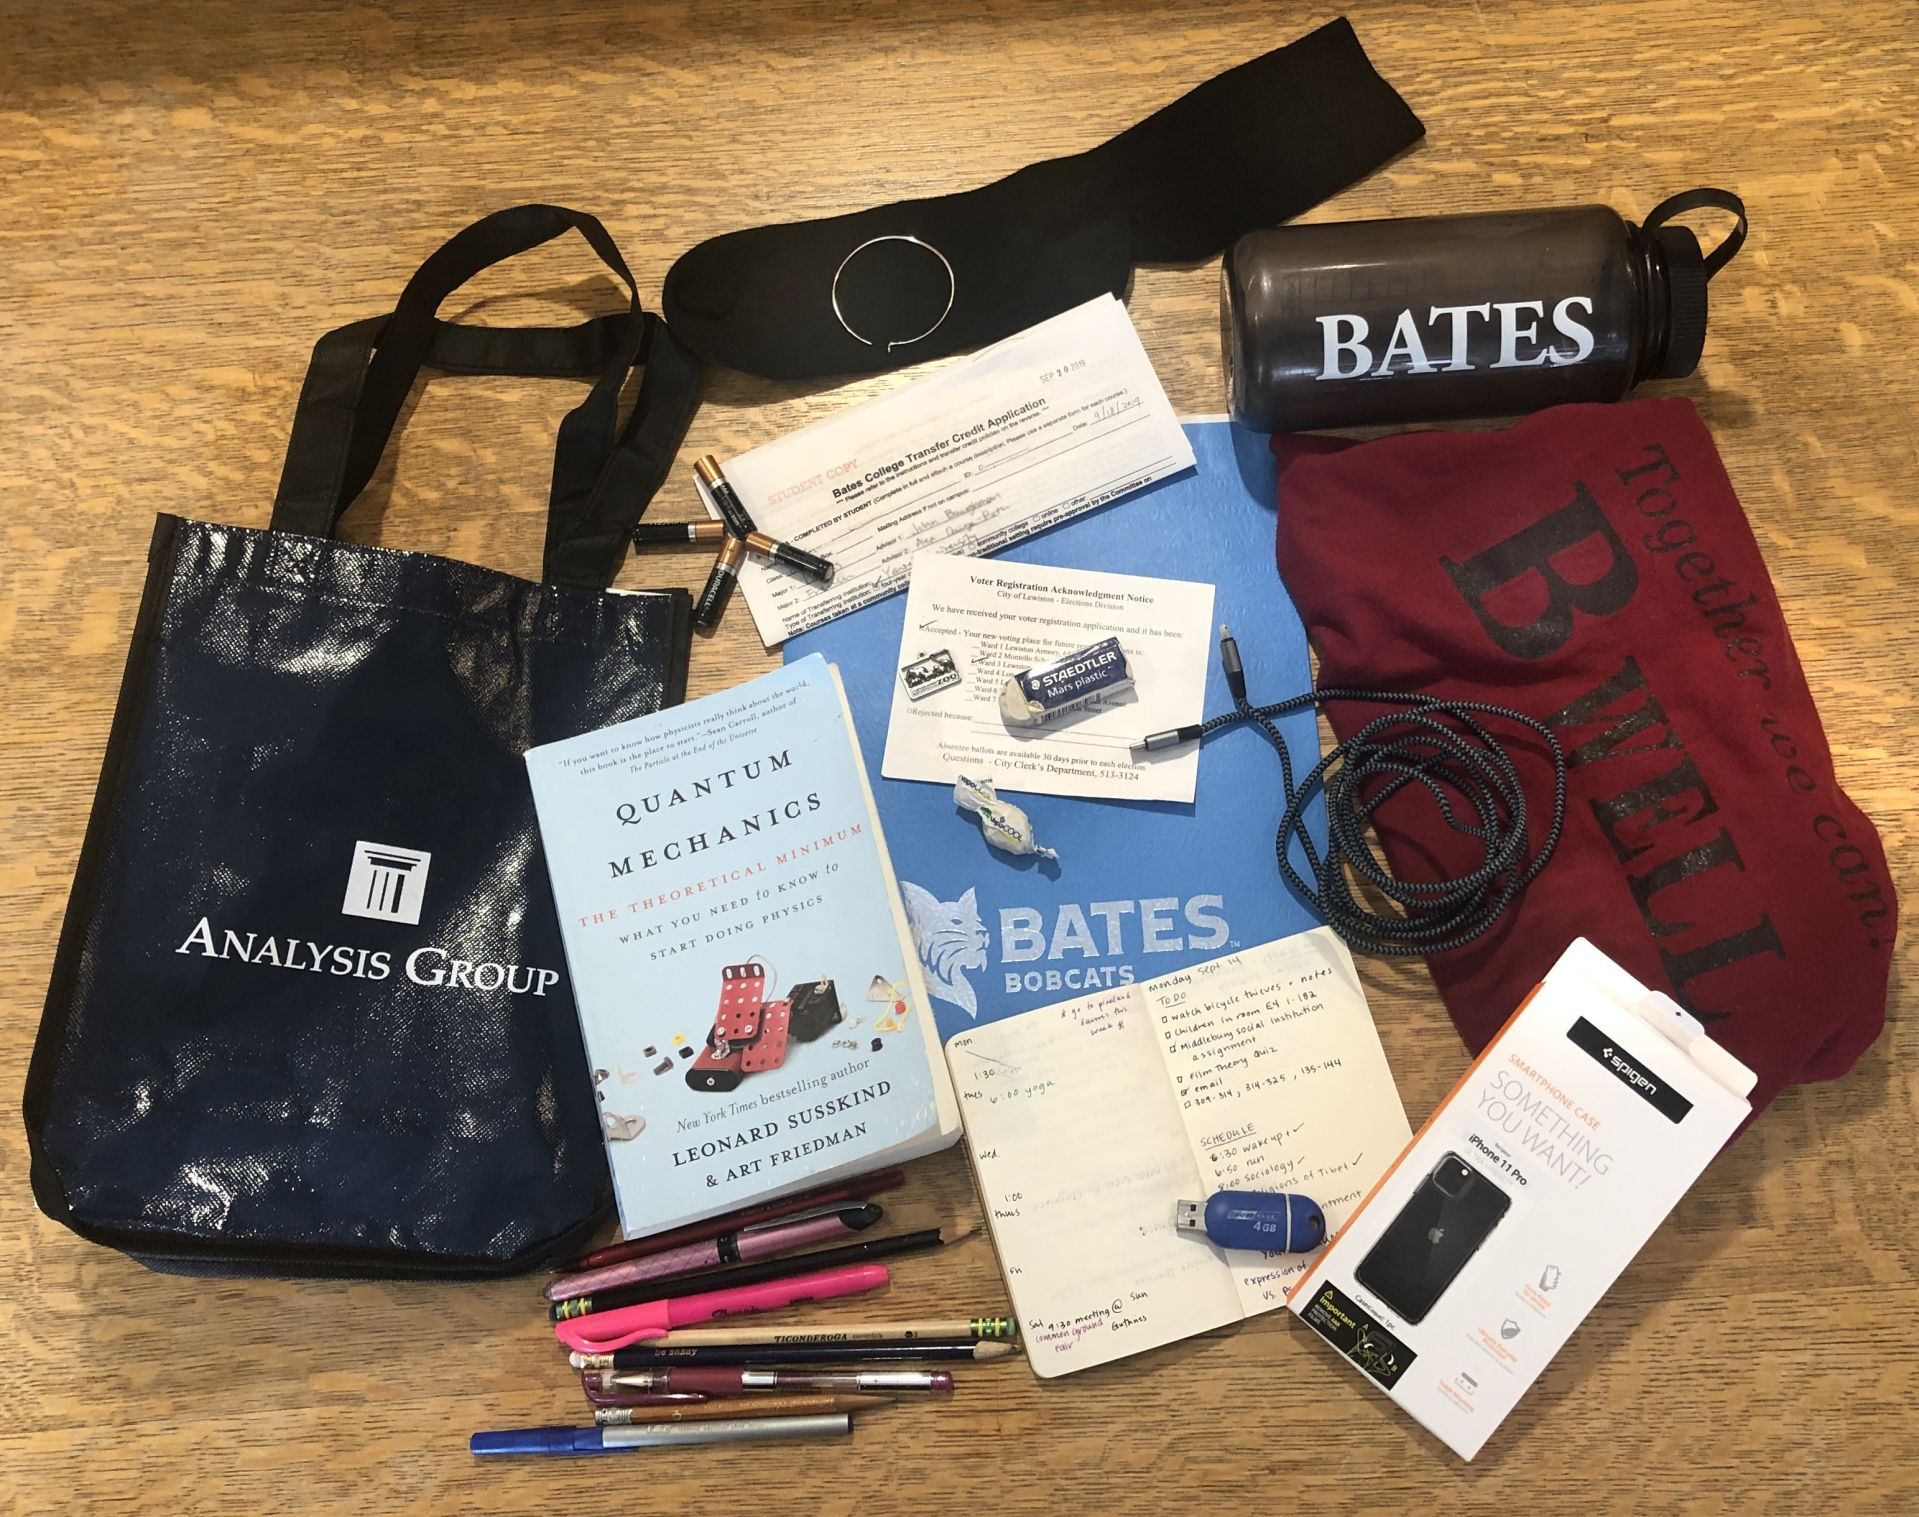 Items in the Ladd Library Lost & Found on Sept. 25, 2019. (Jay Burns/Bates College)